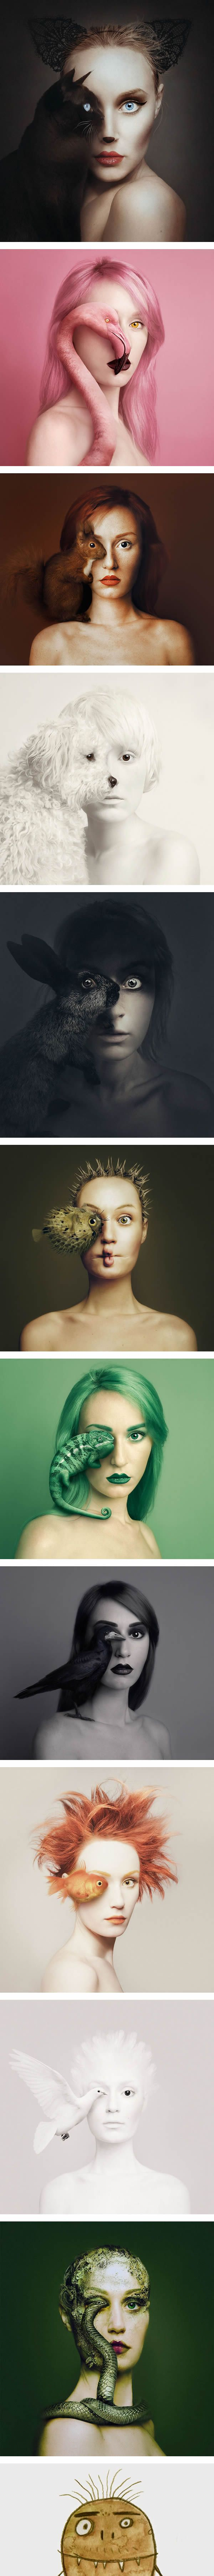 Flora Borsi Takes Self-Portraits with the Eyes of Animals in Her Series, 'Animeyed'